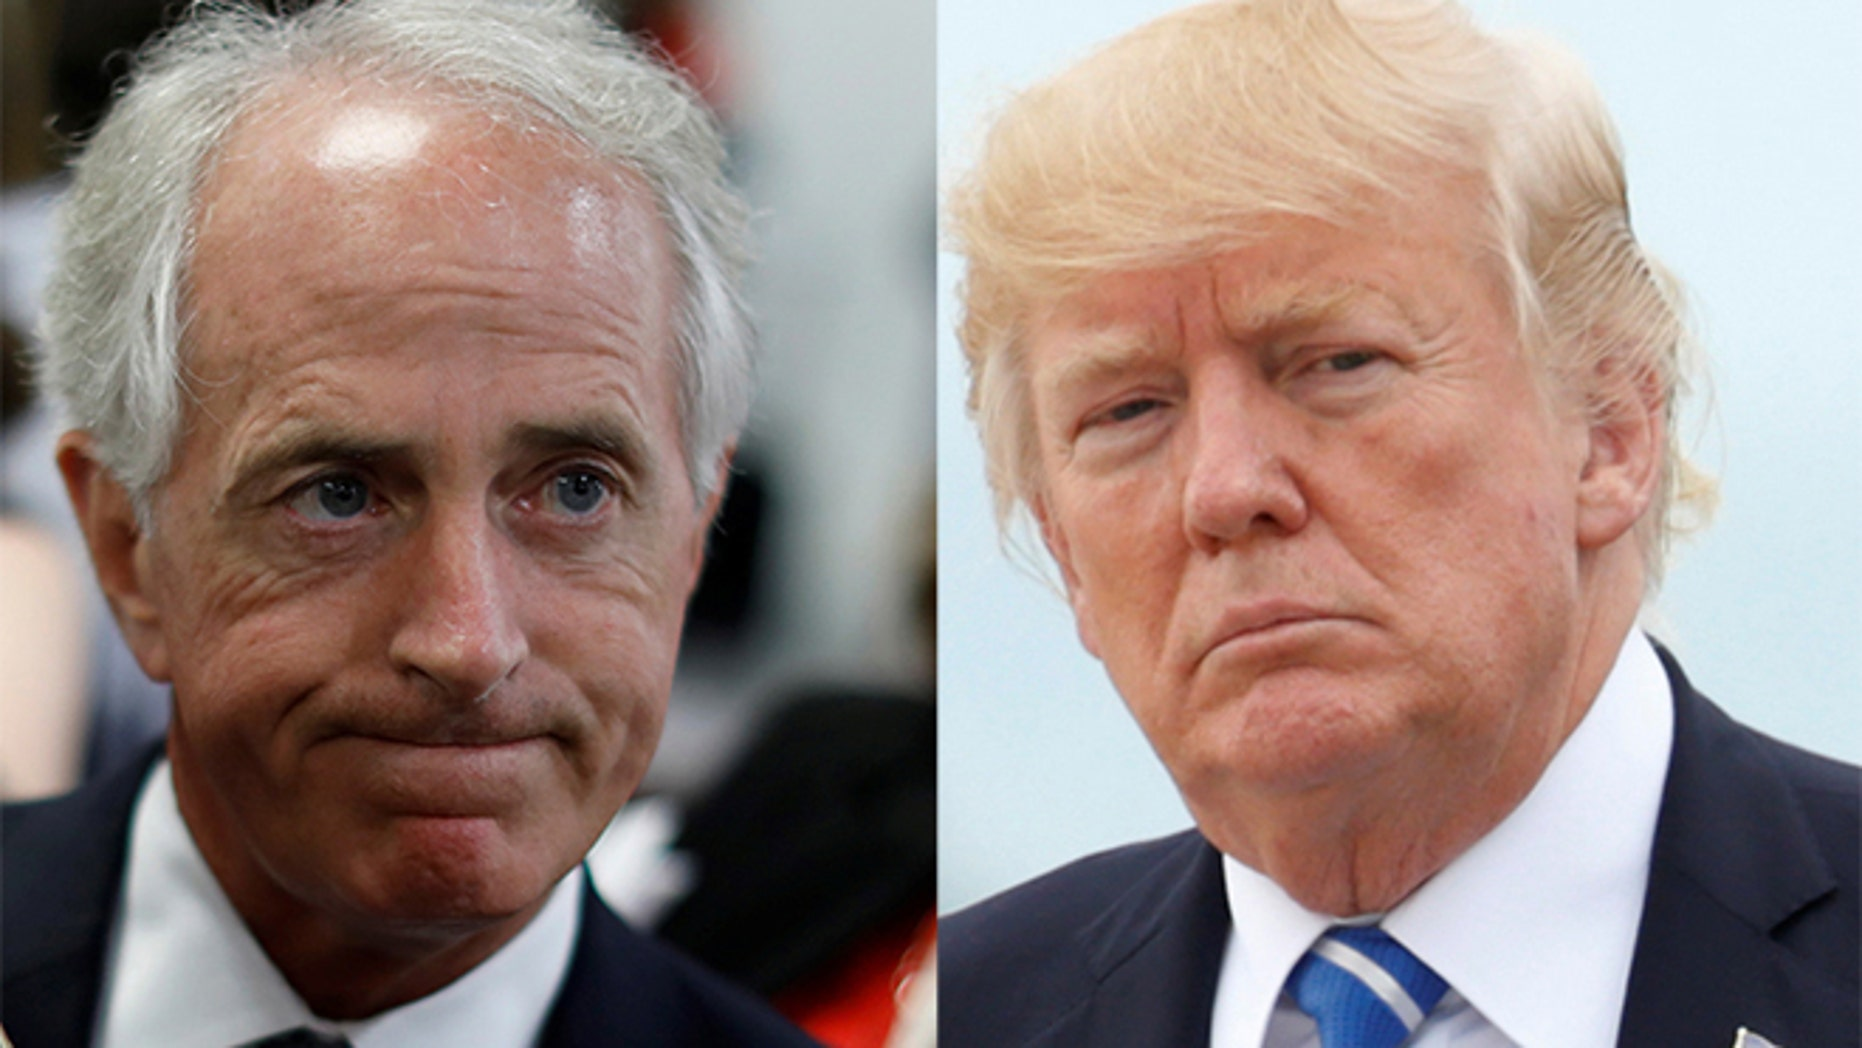 The gloves are off between President Trump and Sen. Bob Corker, left, now that the Tennessee Republican has announced his retirement.